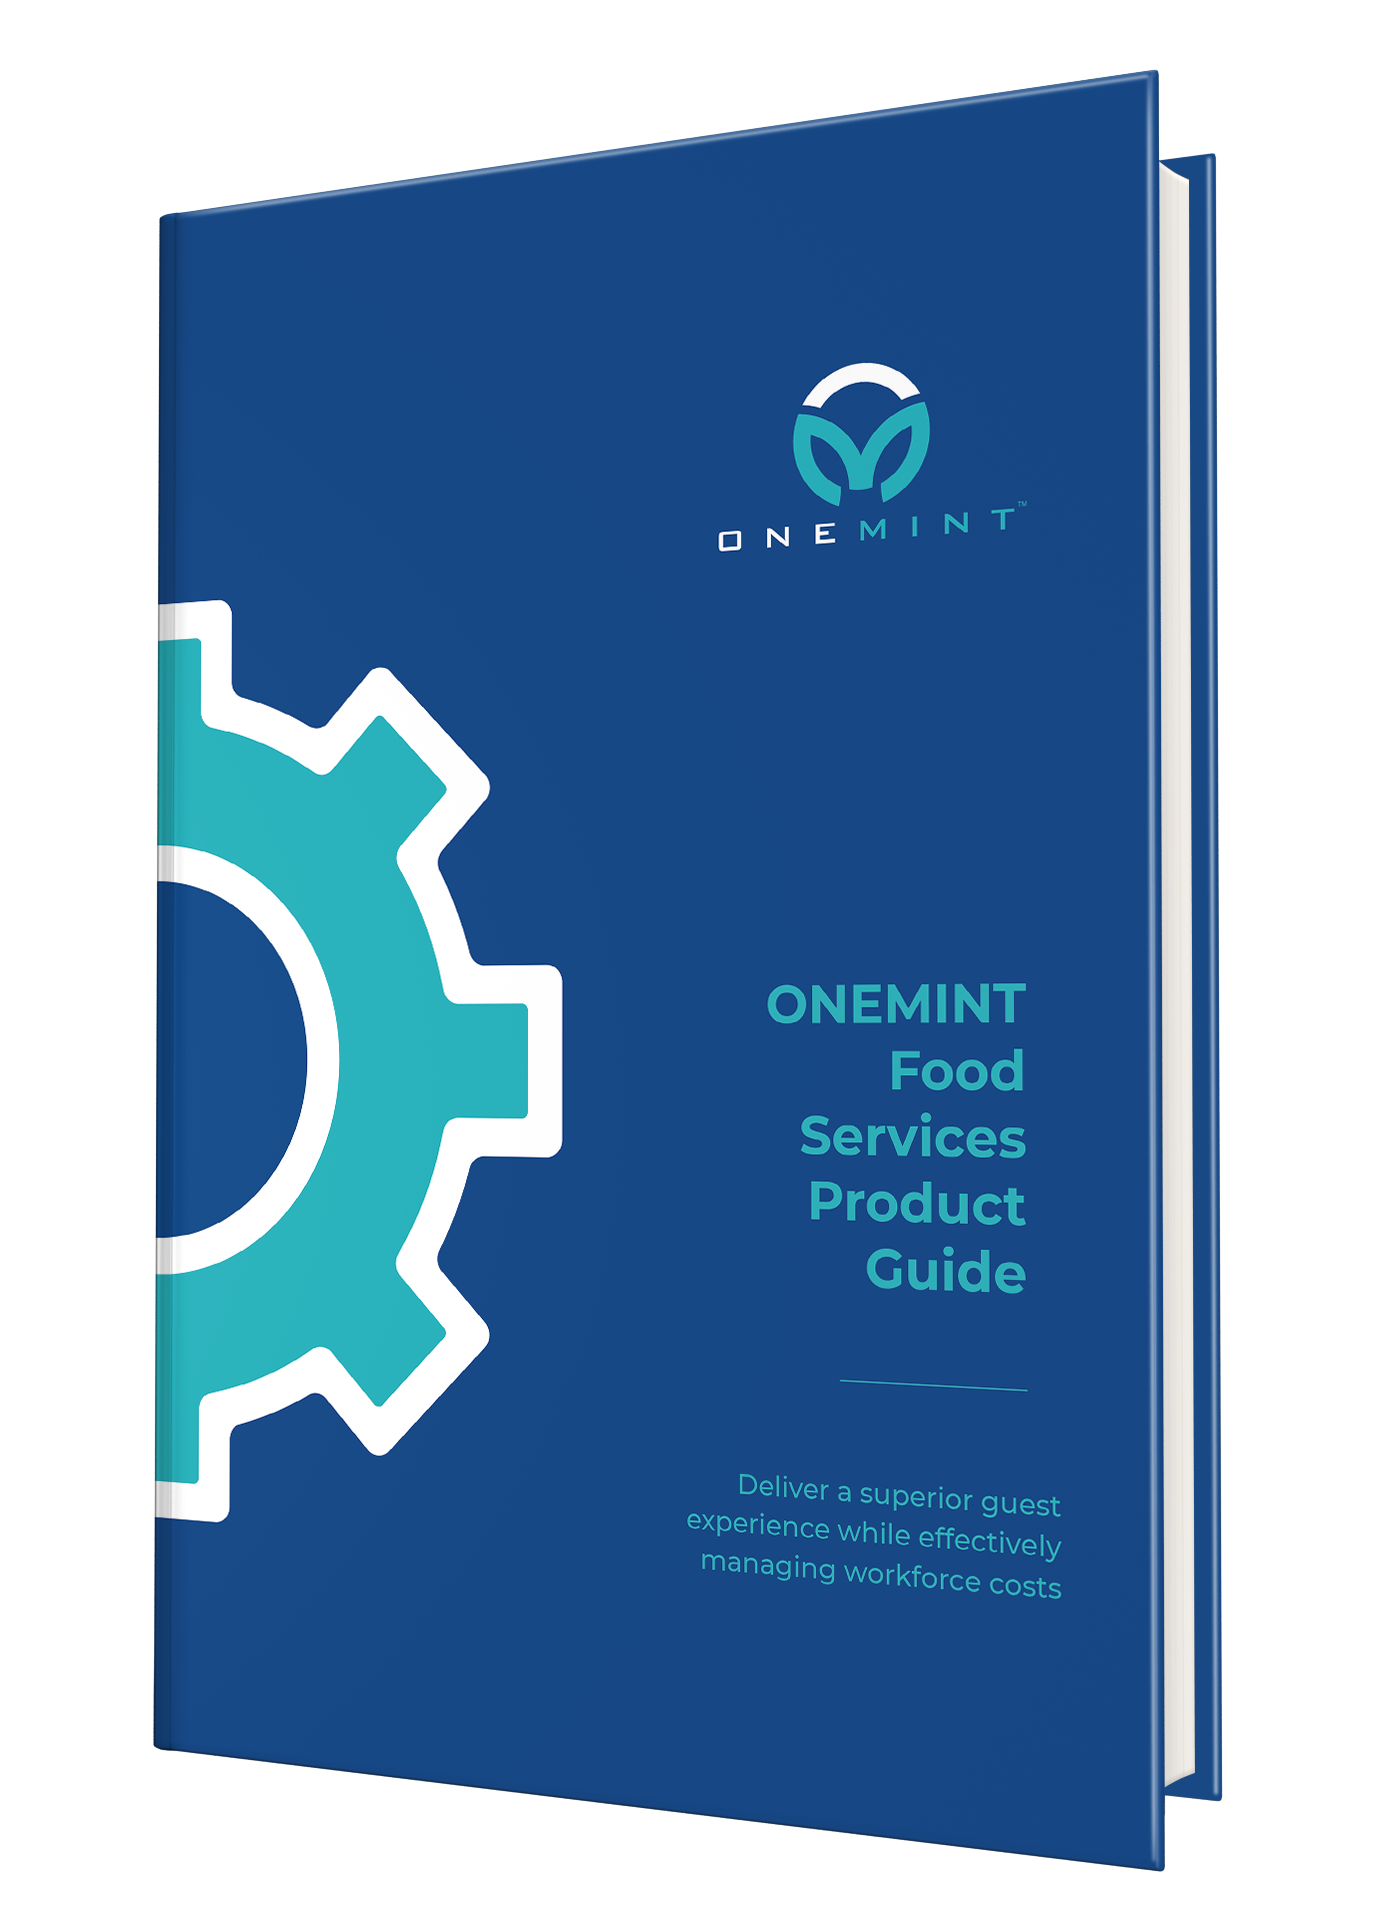 onemint-food-service-product-guide-2018